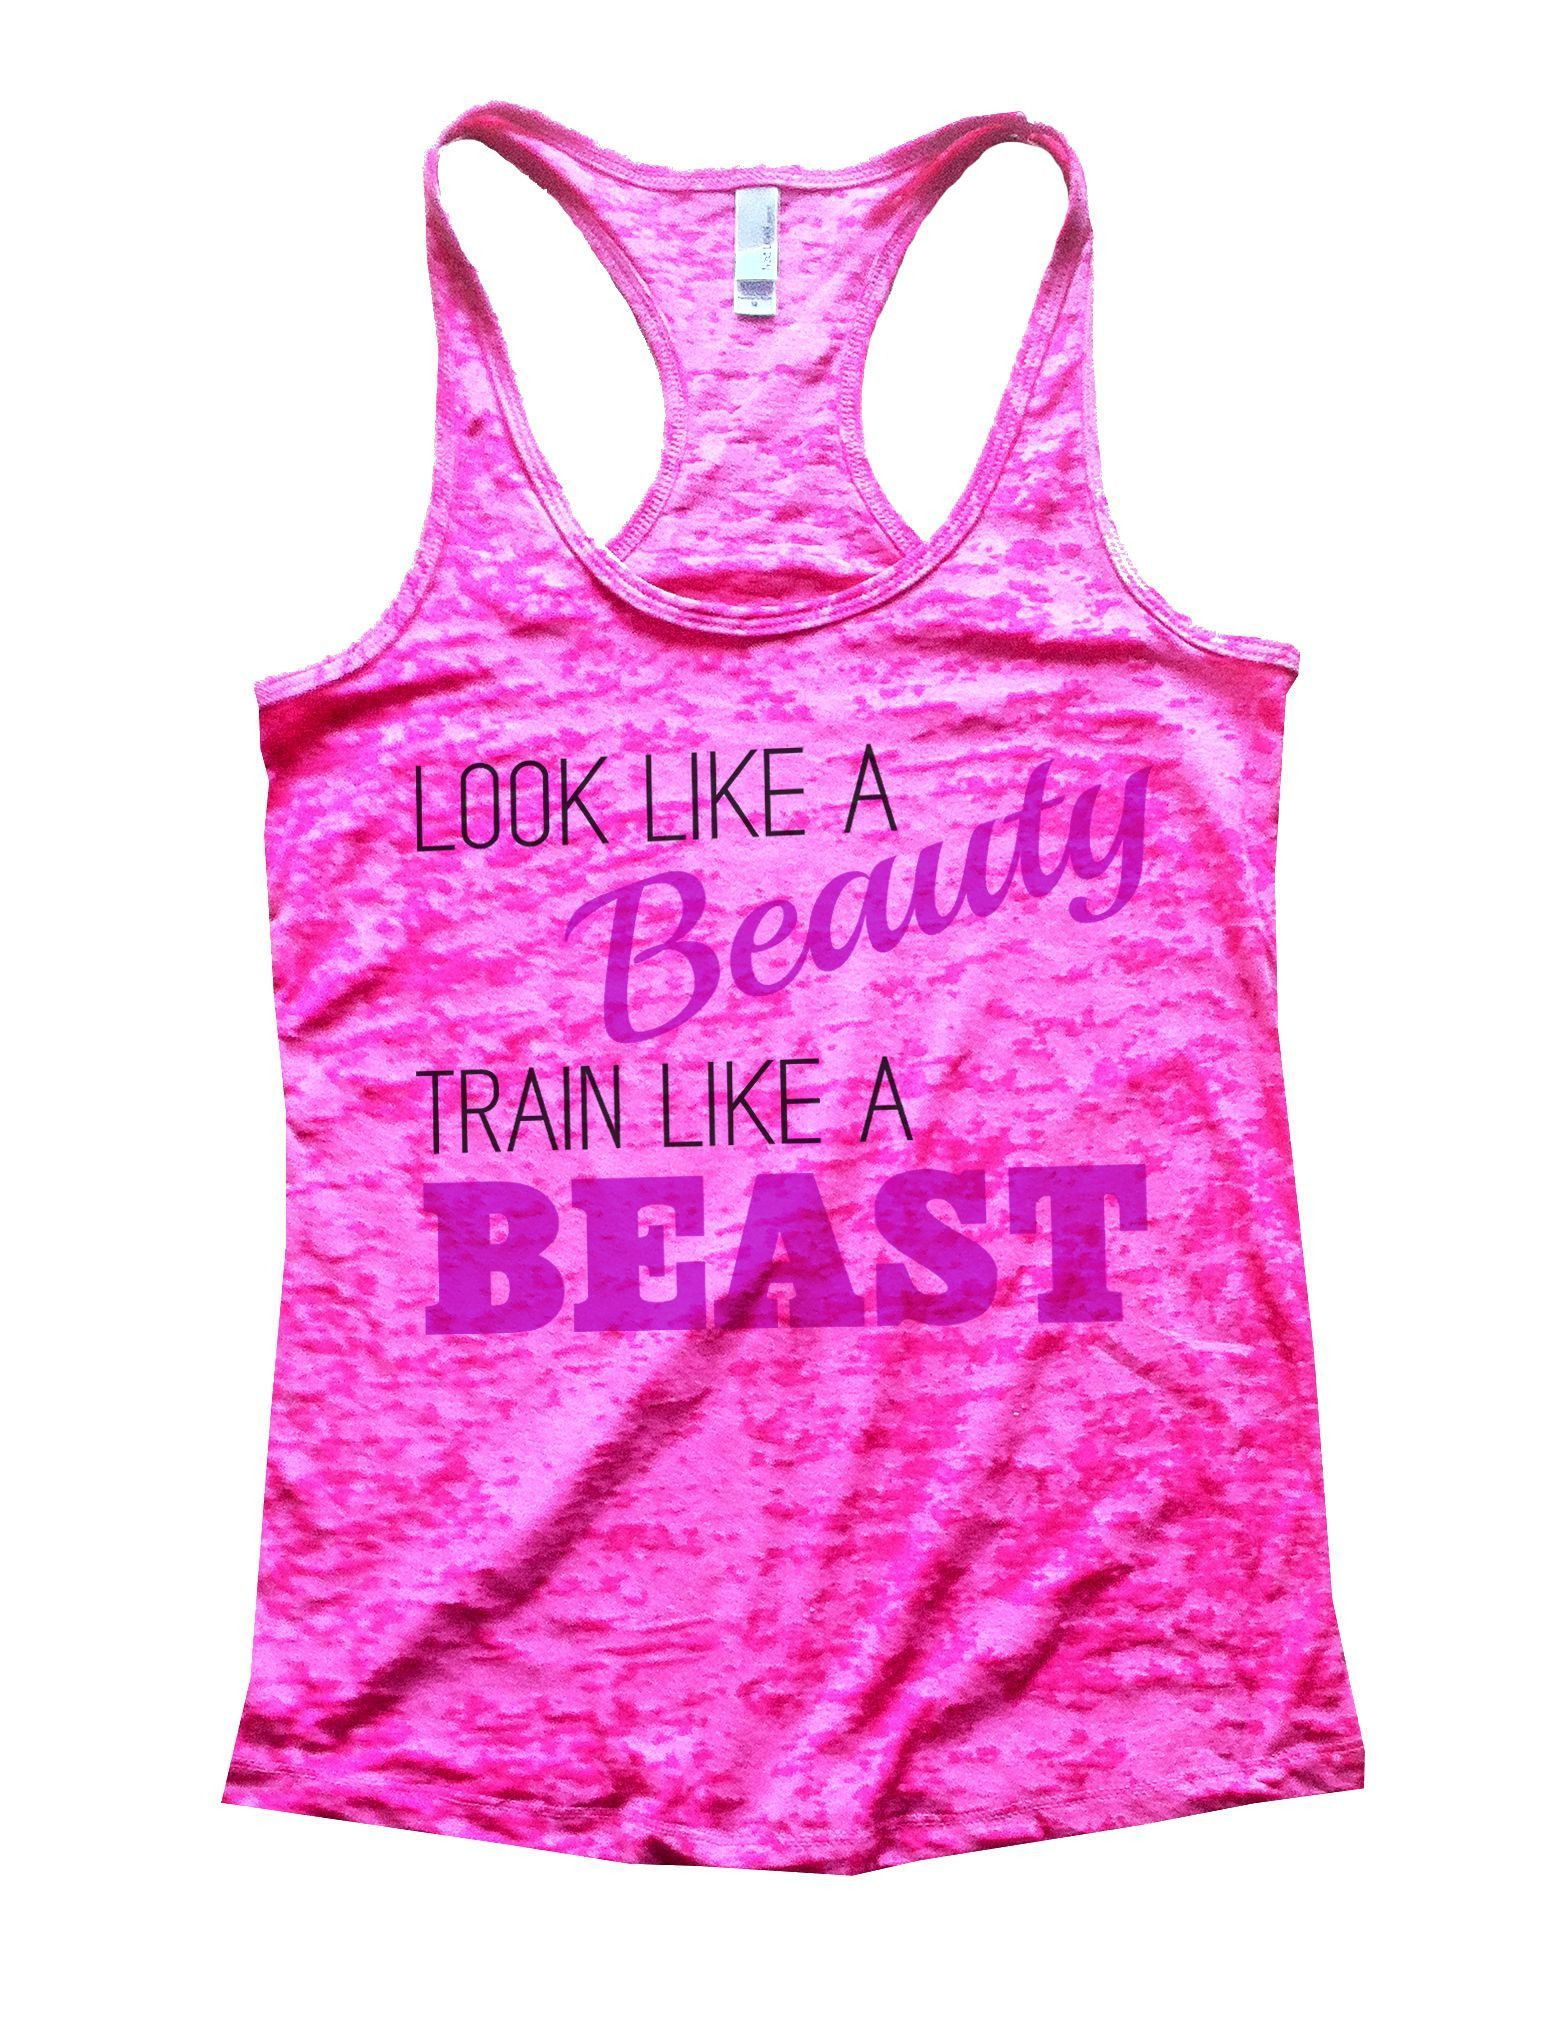 b4b4a7a66e6a82 Look Like A Beauty Train Like A Beast Burnout Tank Top By Funny Threadz -  751